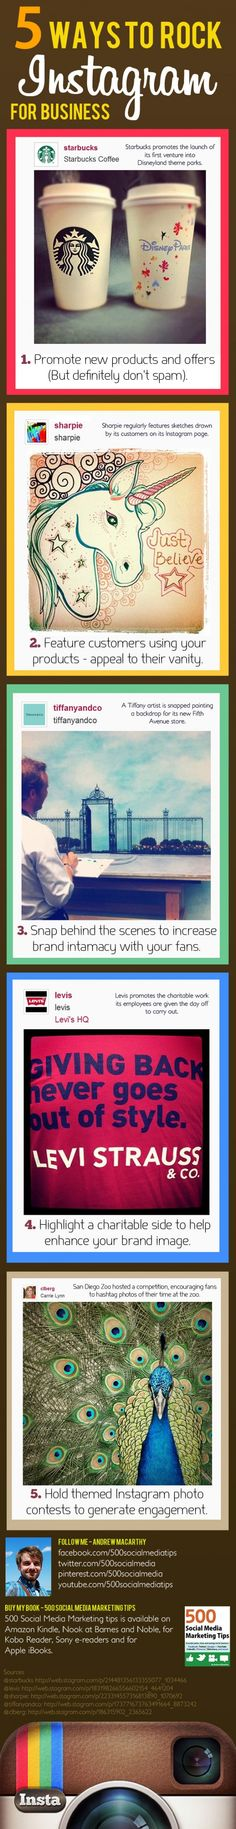 There are multitudes of ways for brands to connect with fans on Instagram. Today's infographic offers five easy-to-follow tips on how to effectively use Instagram for business.